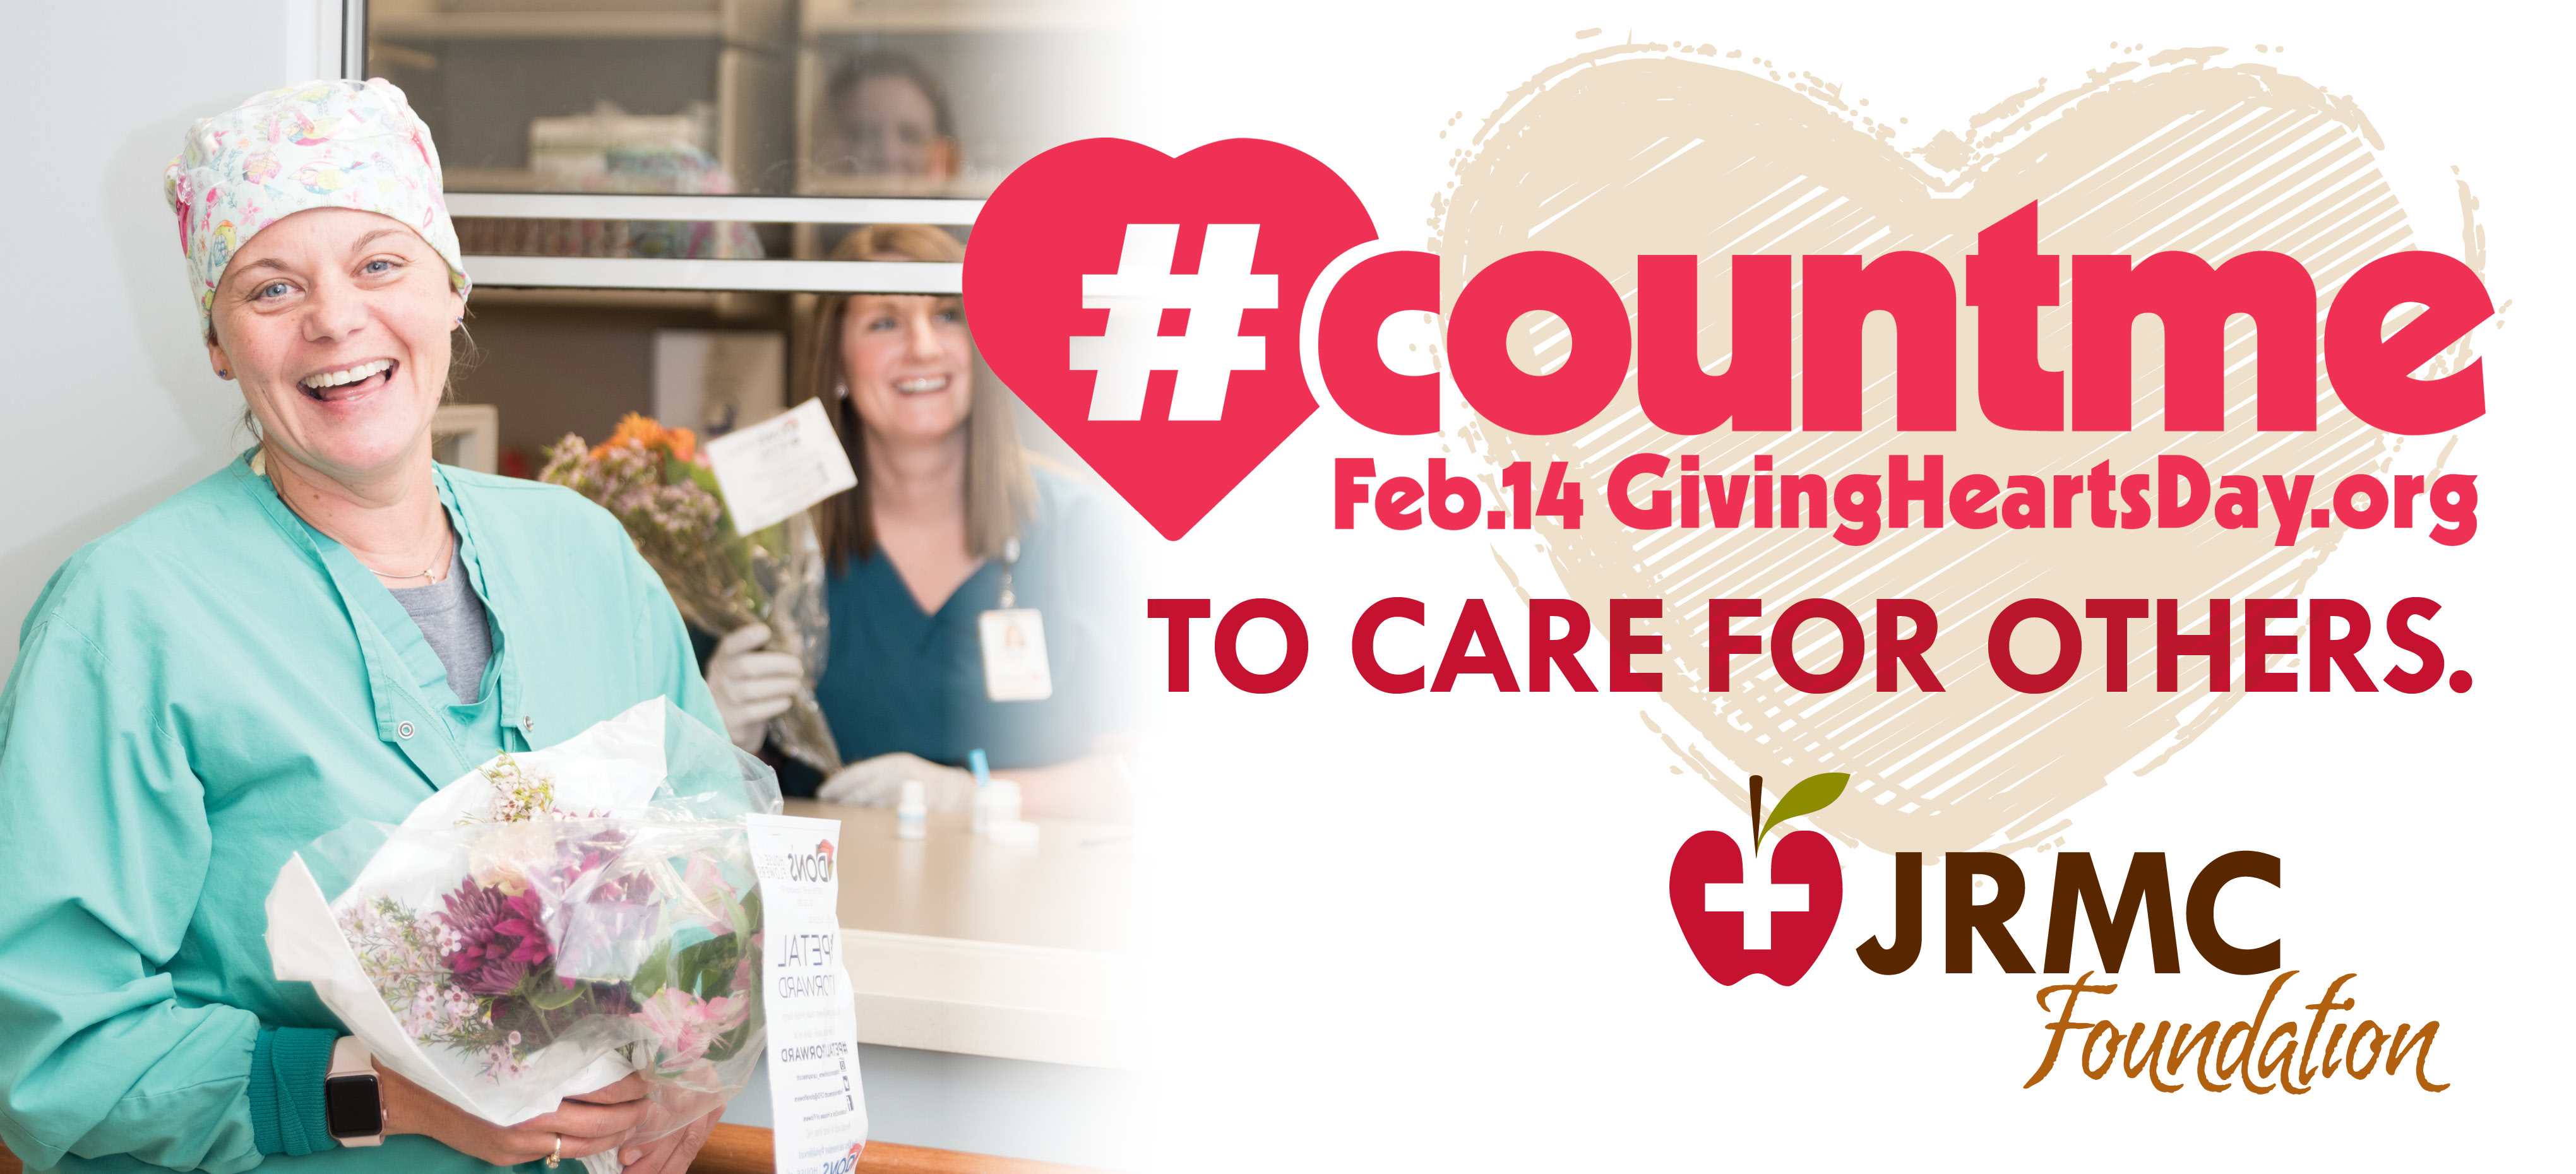 Joint us on Feb. 14 for Giving Hearts Day. Double the love all day on Feb. 14.